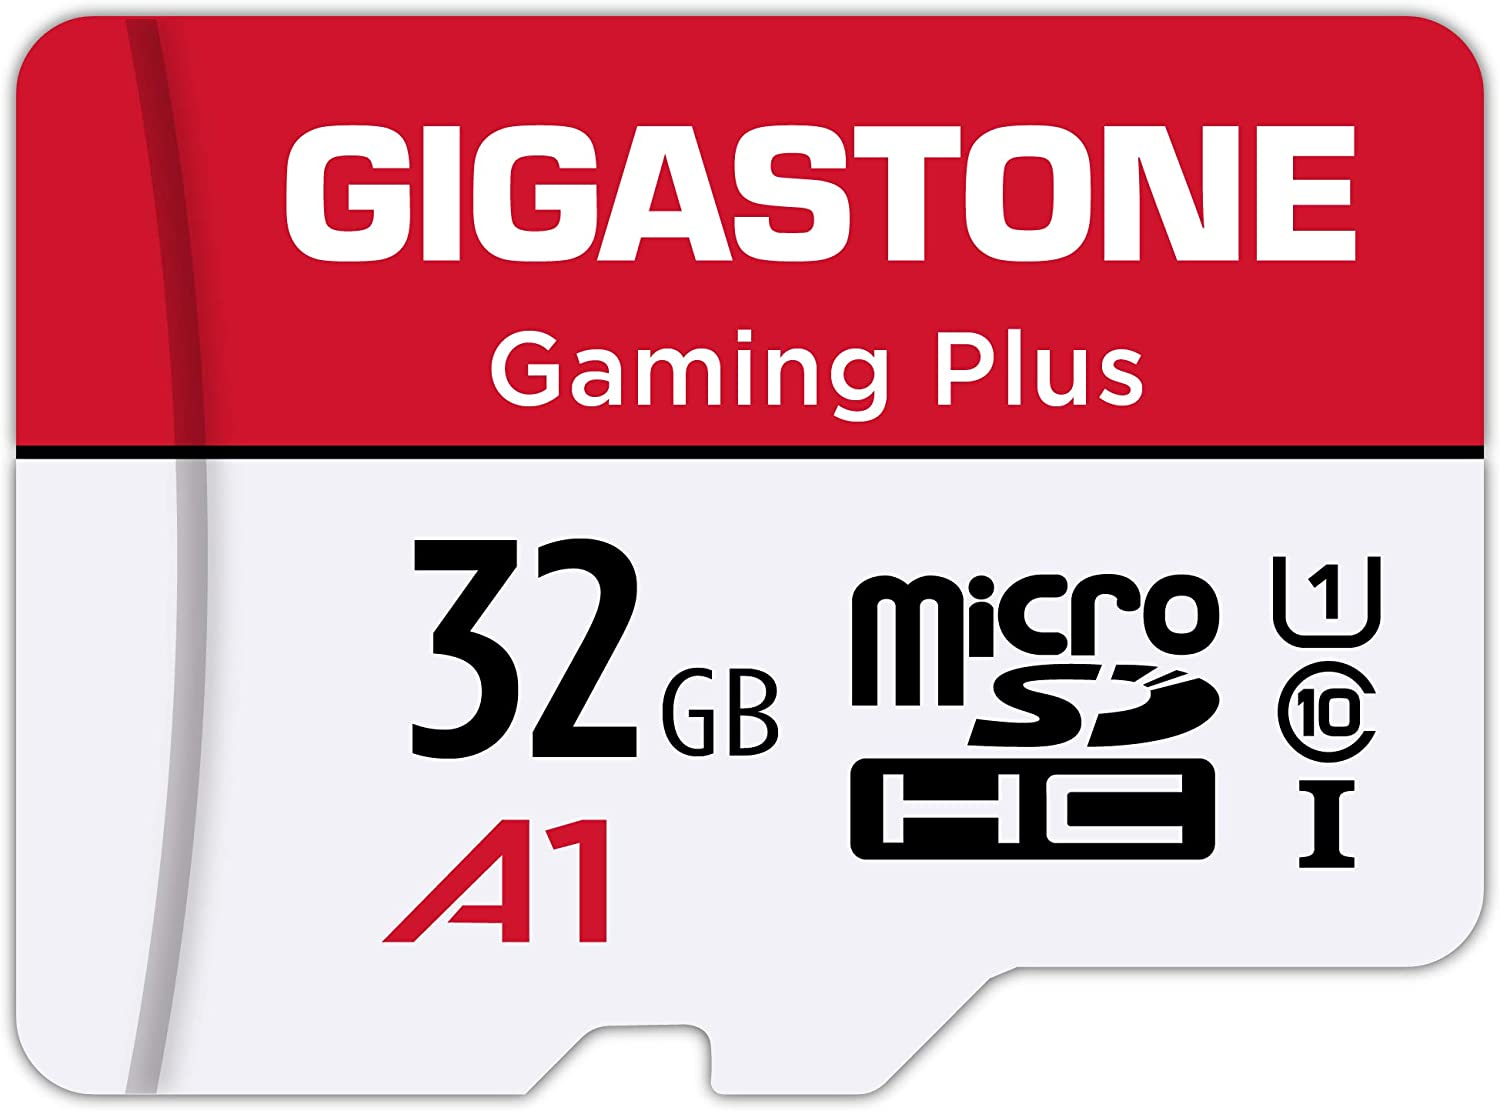 Gigastone Gs 2in1600 X Duracell 16gb 16 Gb Micro Sd Computers Accessories